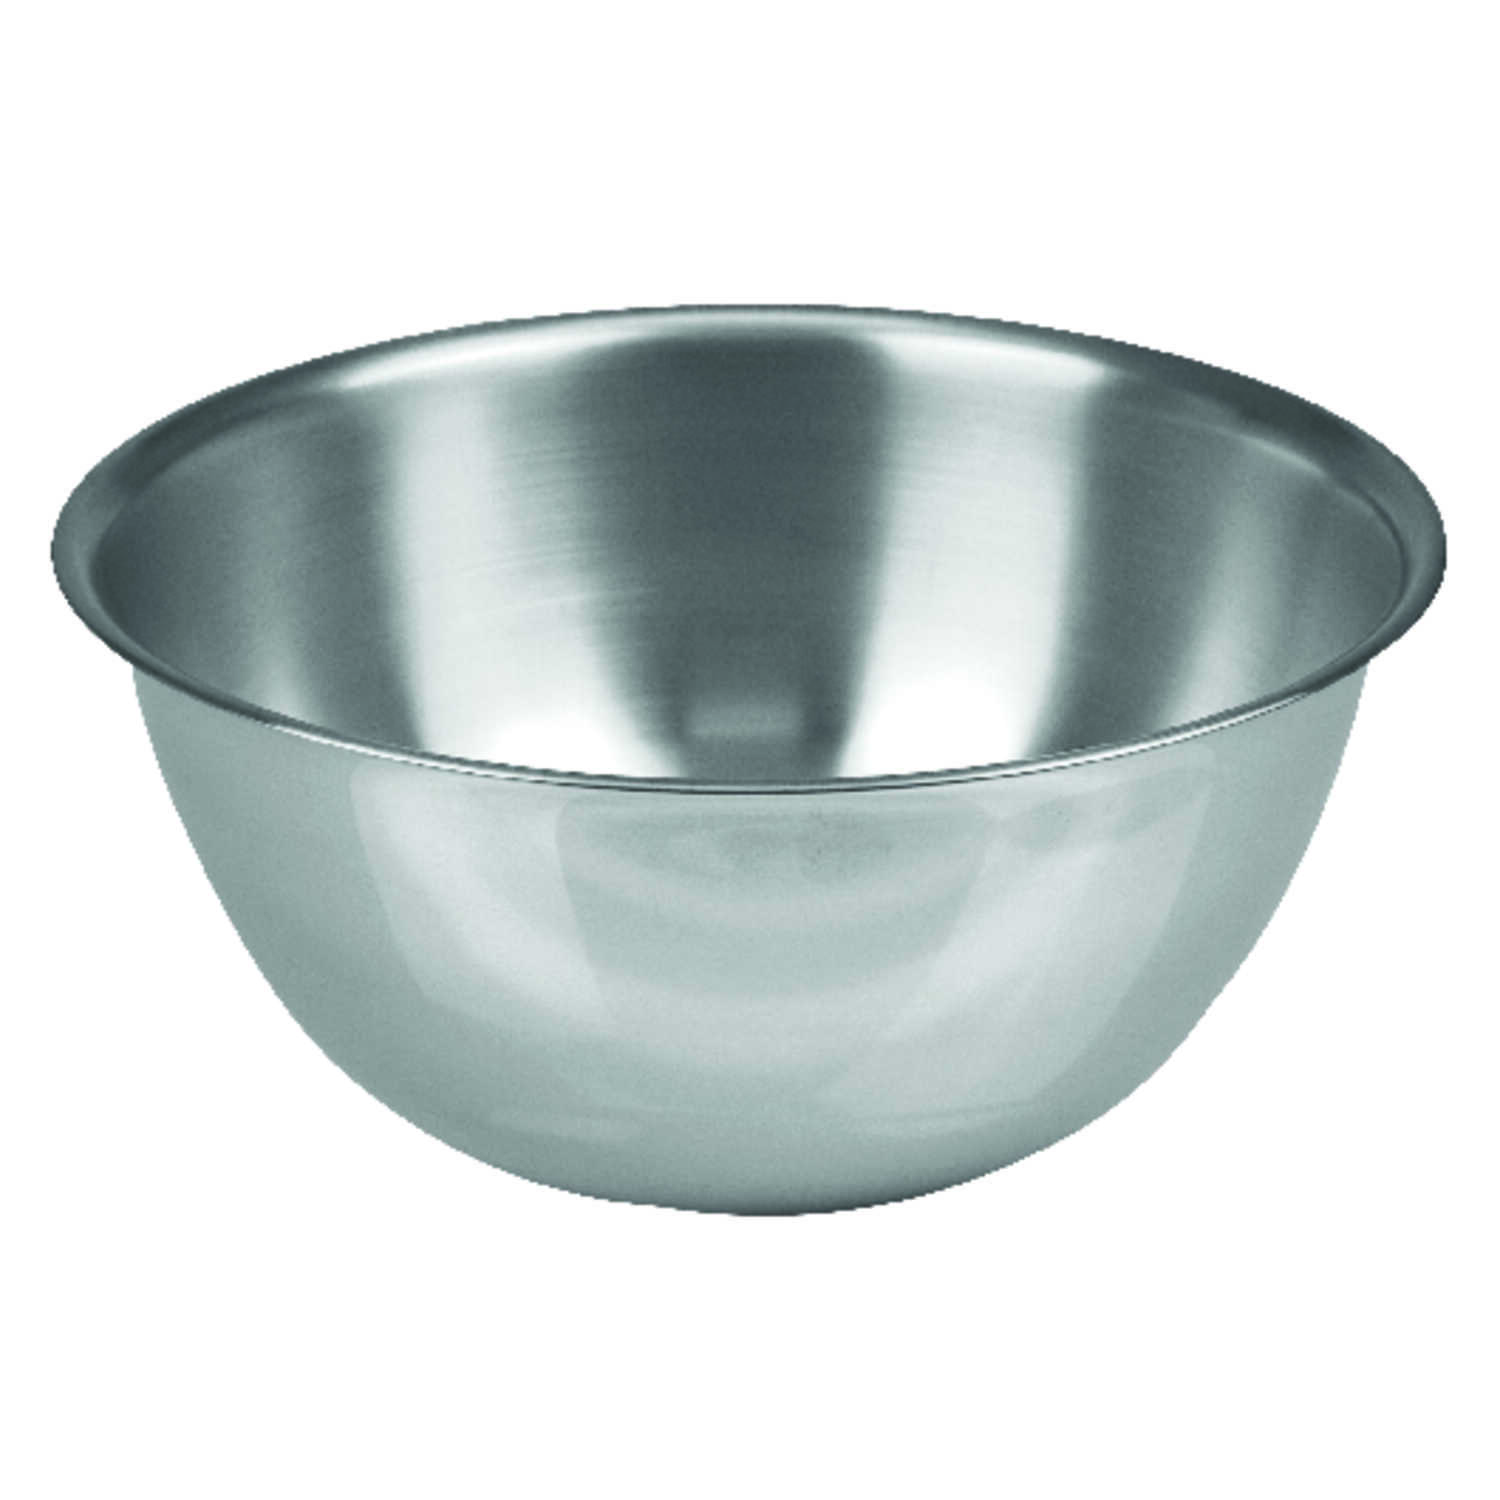 Fox Run  4.25 qt. Stainless Steel  Silver  Mixing Bowl  1 count